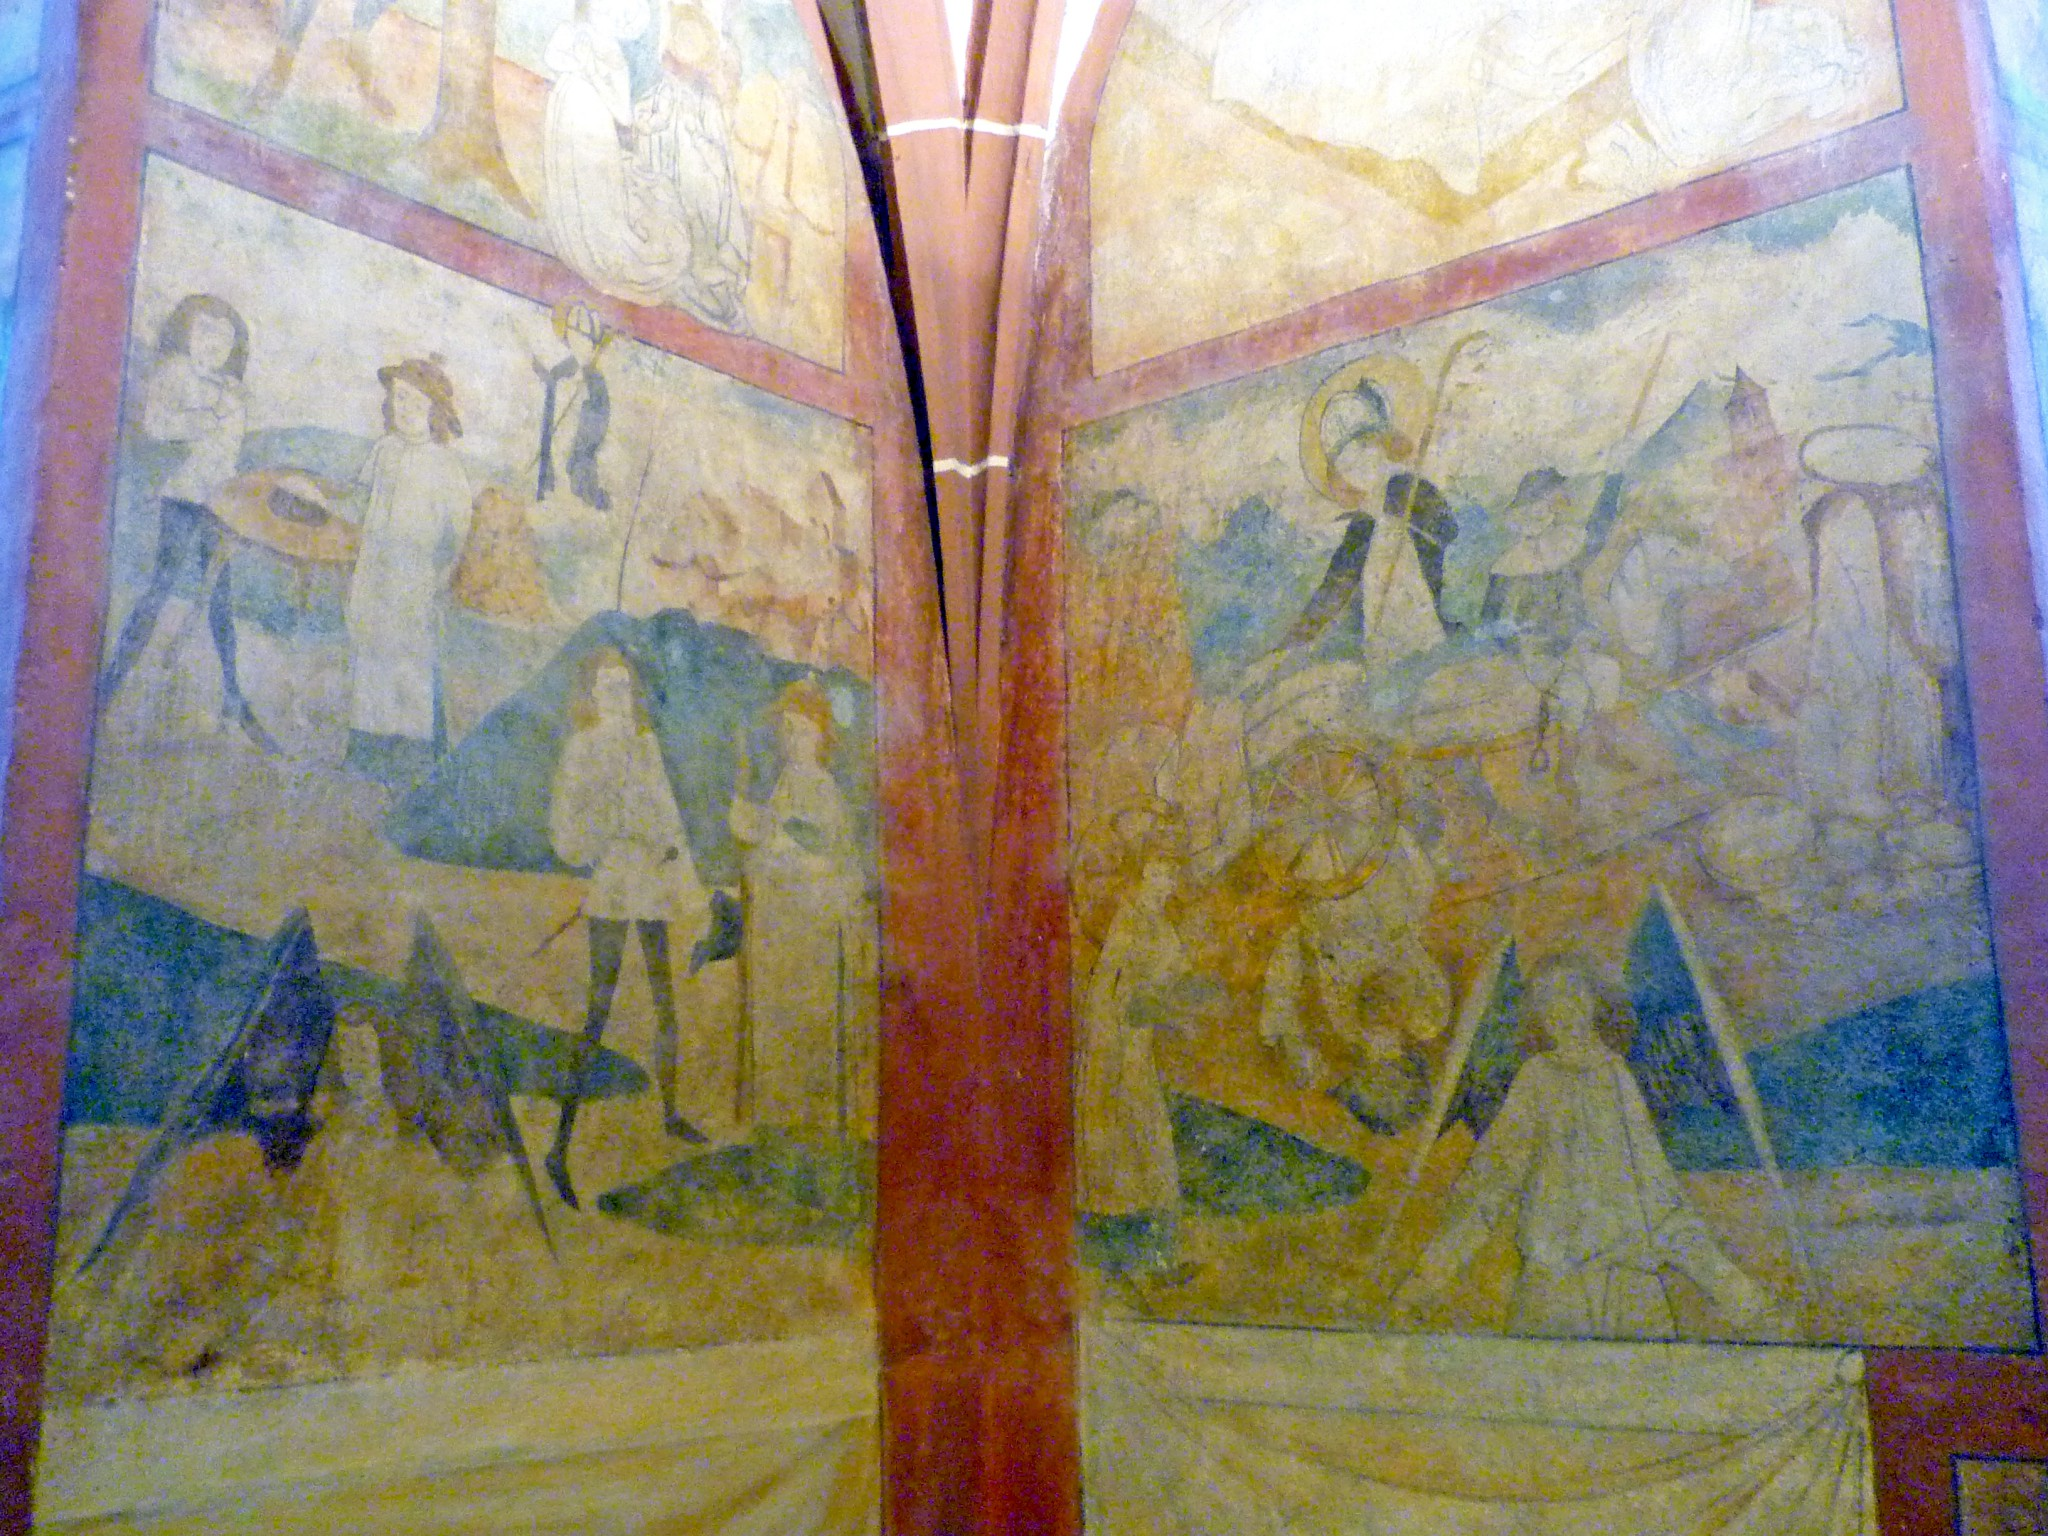 Frescoes inside the church of Hunawihr © French Moments